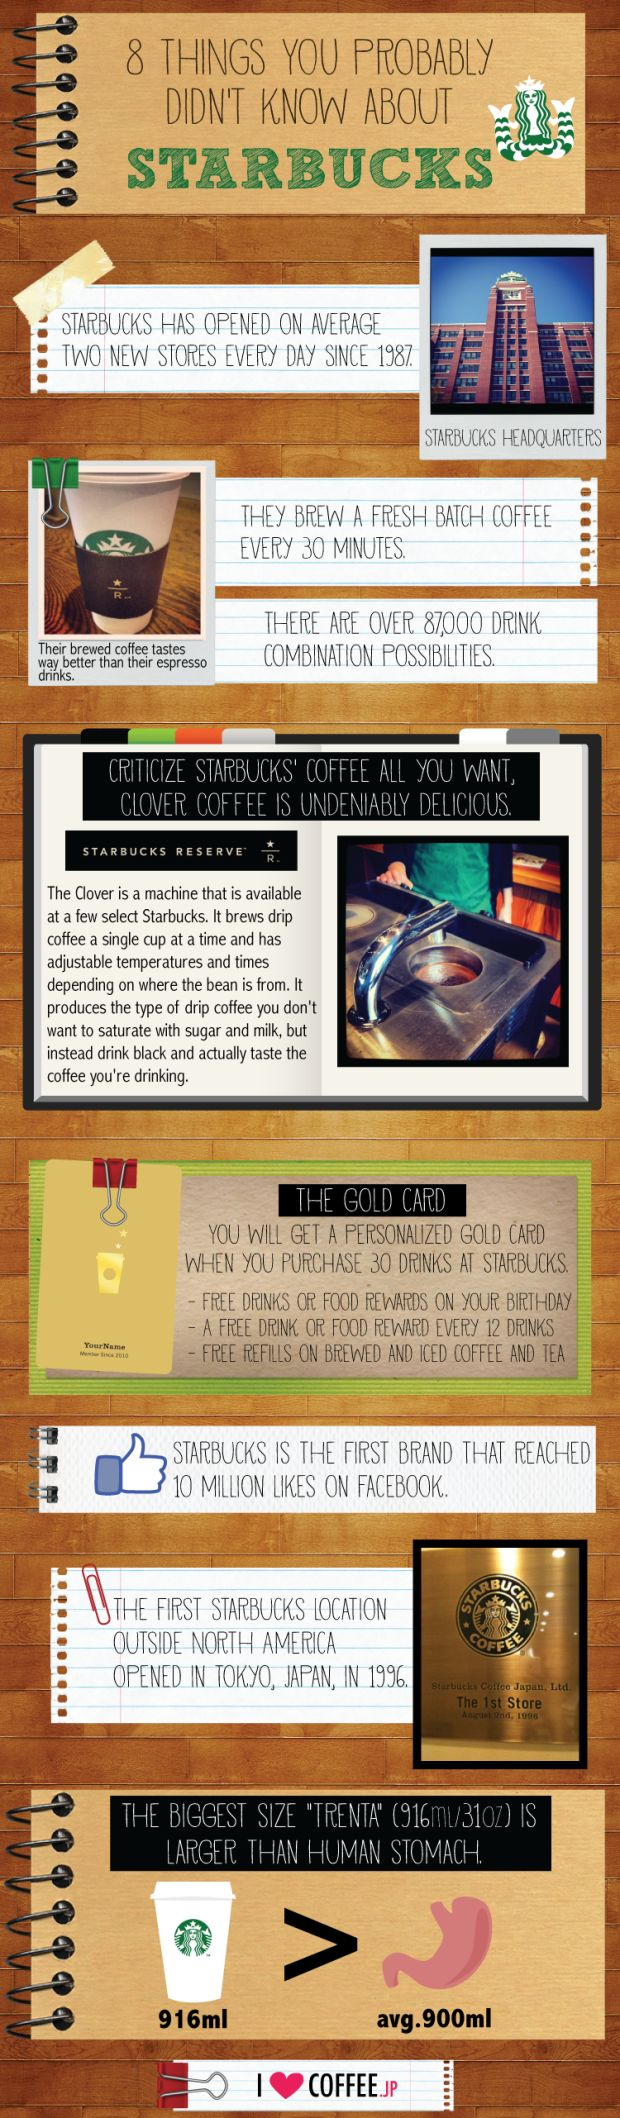 8 Things You May Not Know About Starbucks [Infographic] - ChurchMag